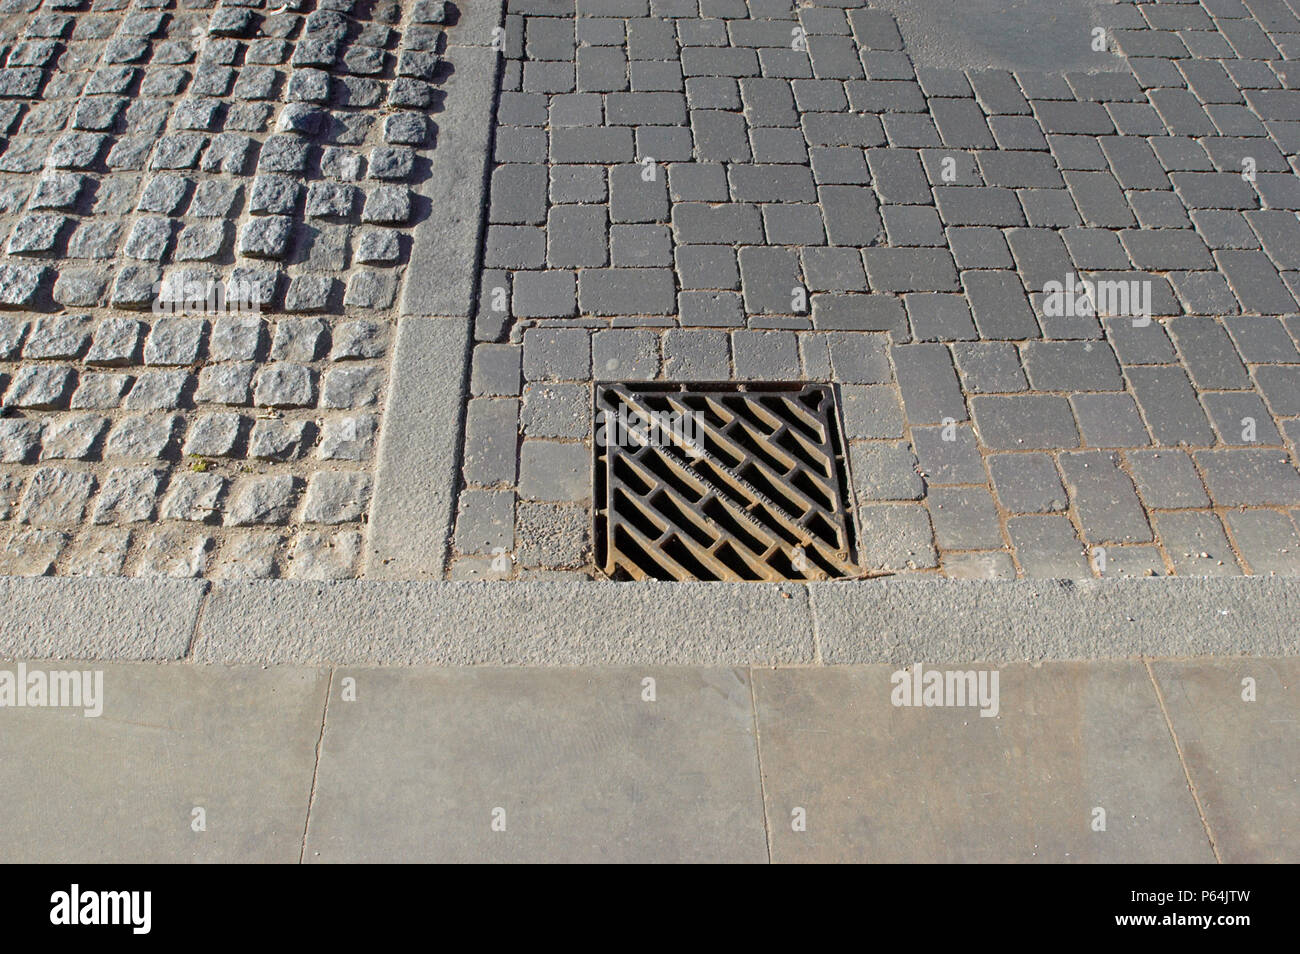 Pedestrian Traffic Calming Stock Photos Pedestrian Traffic Calming